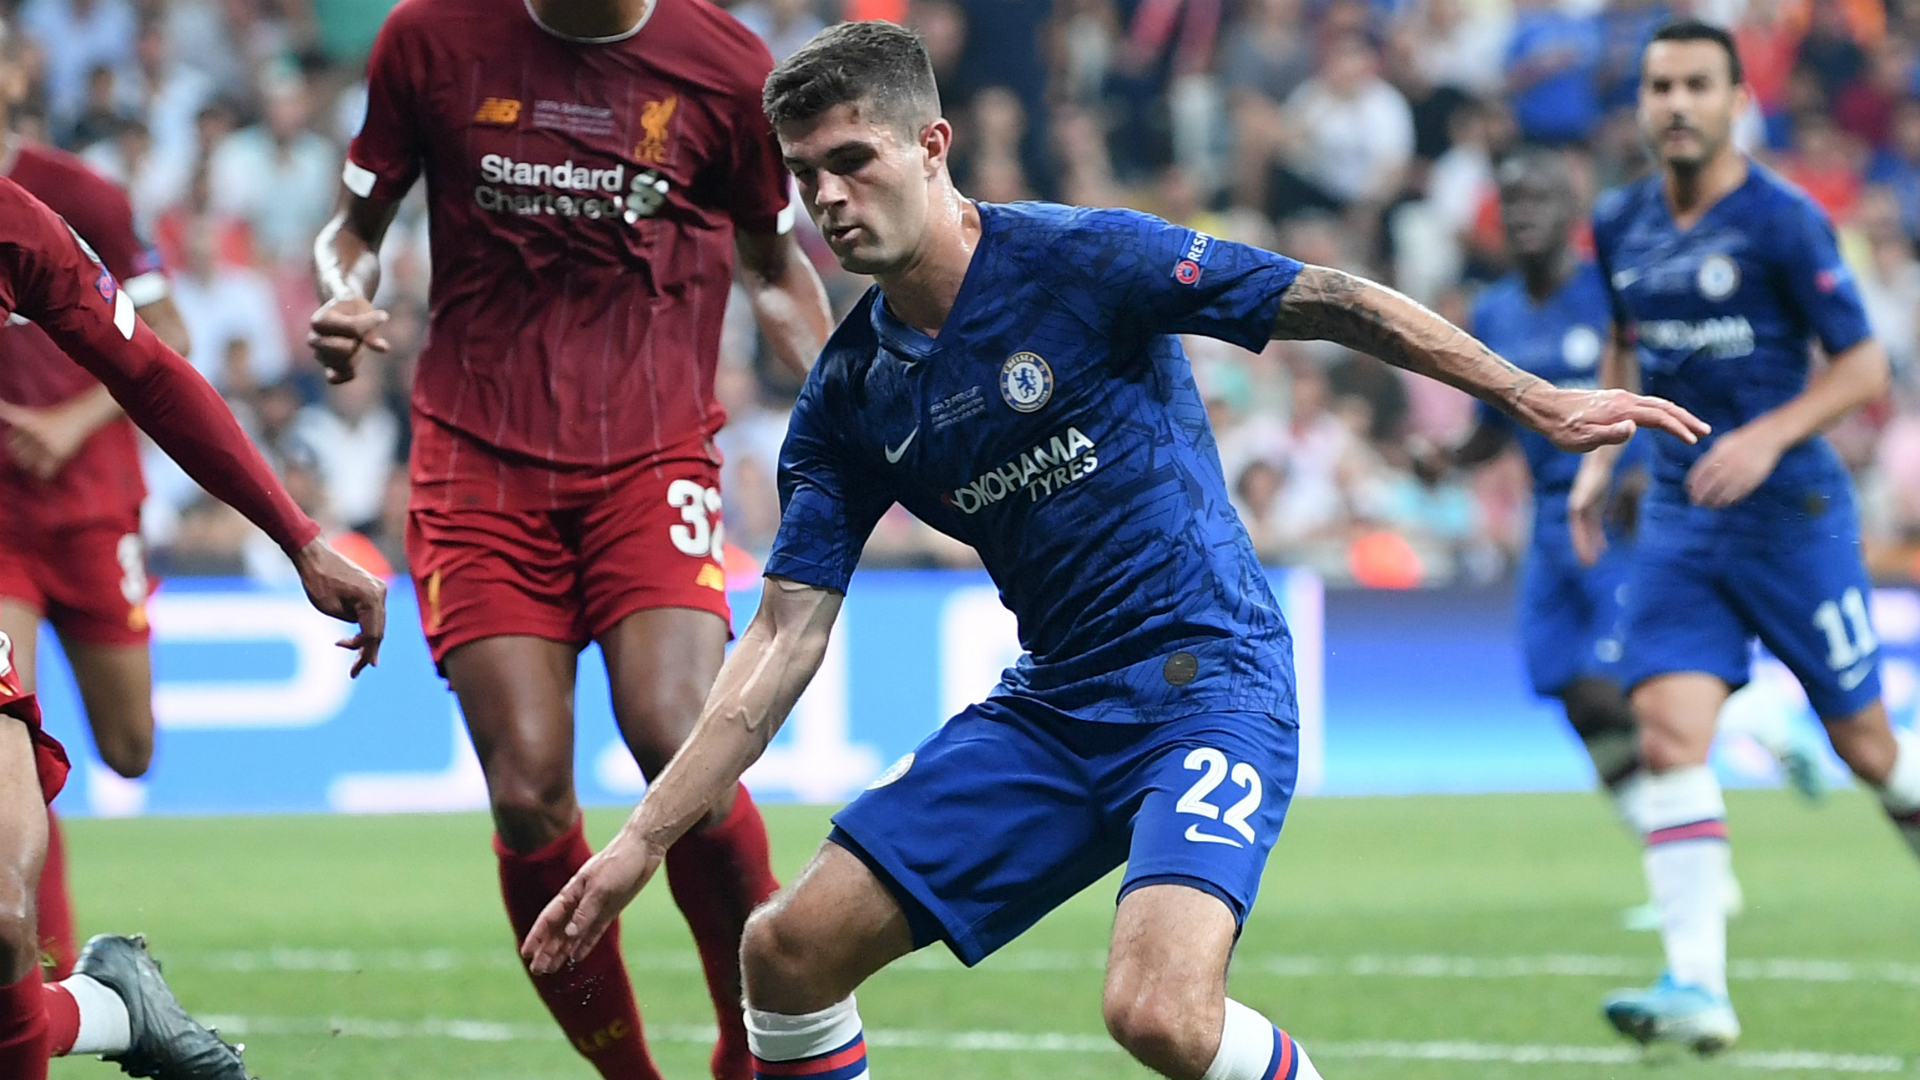 After making his starting debut for Chelsea on Wednesday, Frank Lampard praised the potential of Christian Pulisic.